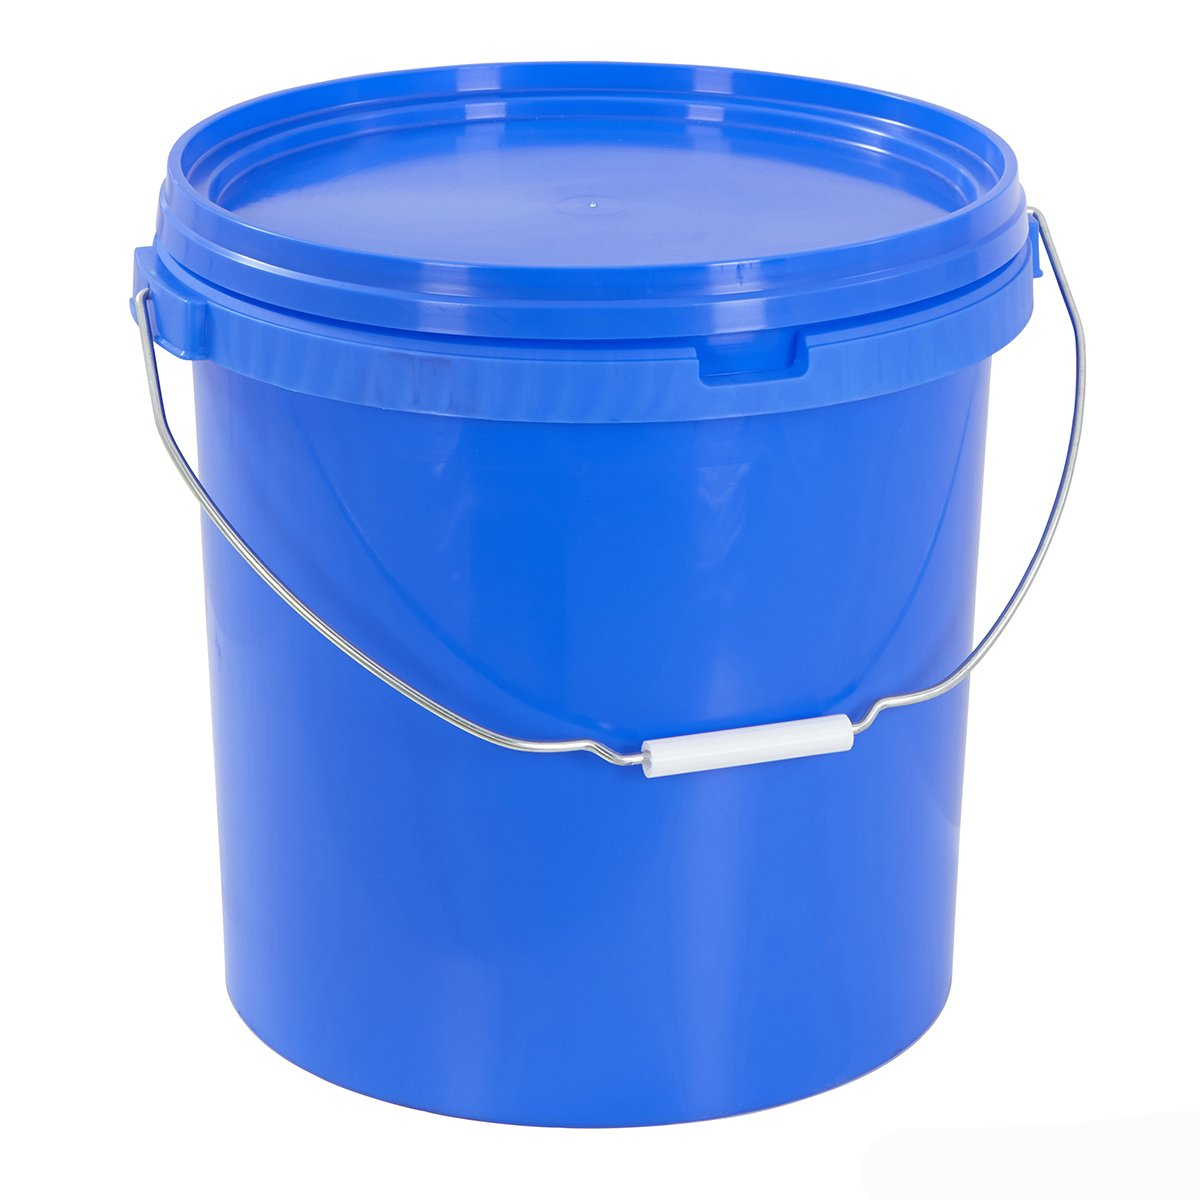 Round Plastic Buckets Storage Containers With Lids Hard Wearing Gardening Home - Various Colours/Sizes (Single 20 Litre Black Bucket)) BiGDUG